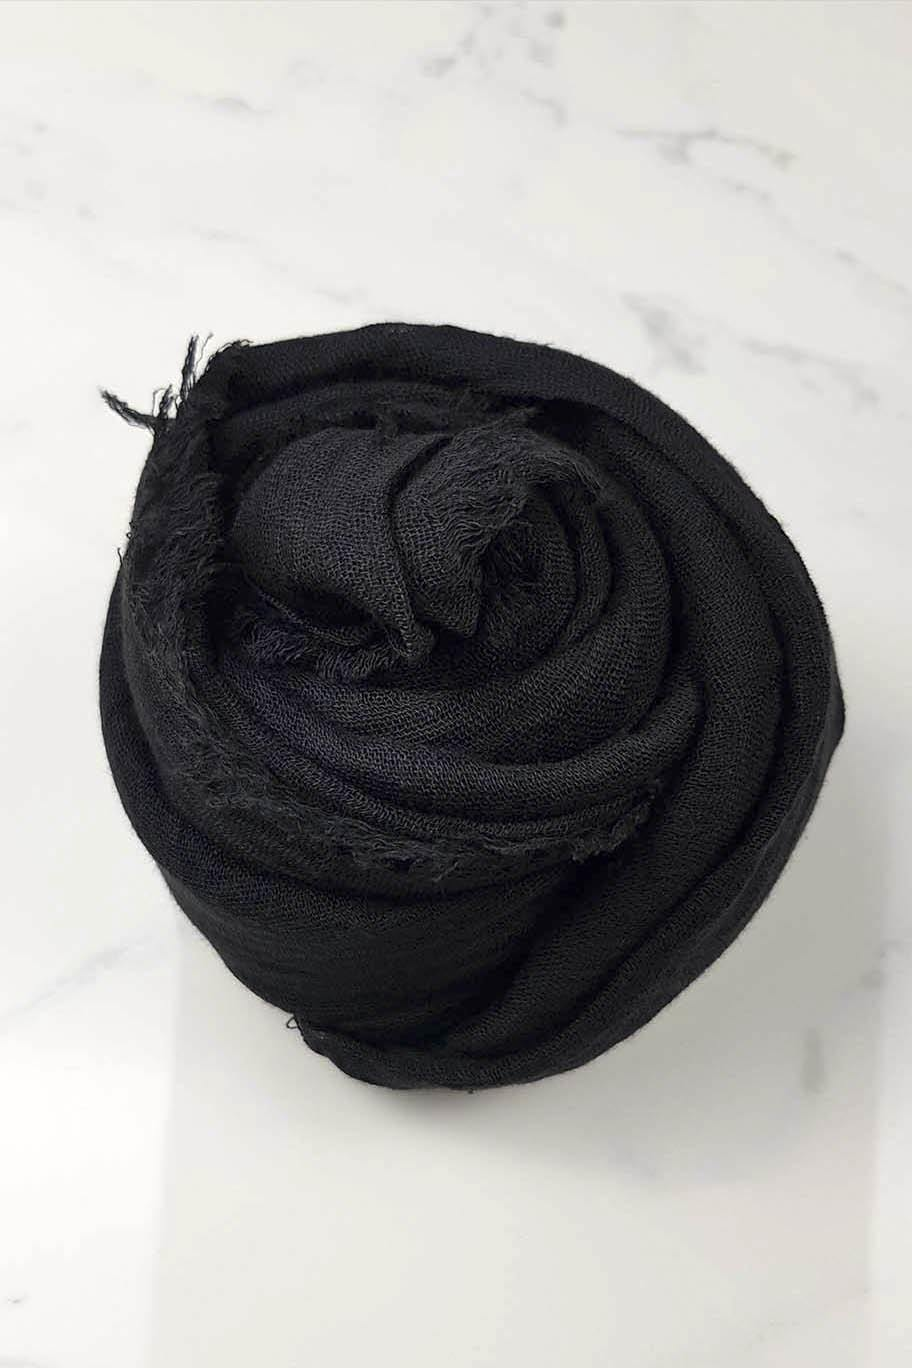 Black Panther Crinkle Cotton - Crinkle Cotton Hijabs - The Modest Look